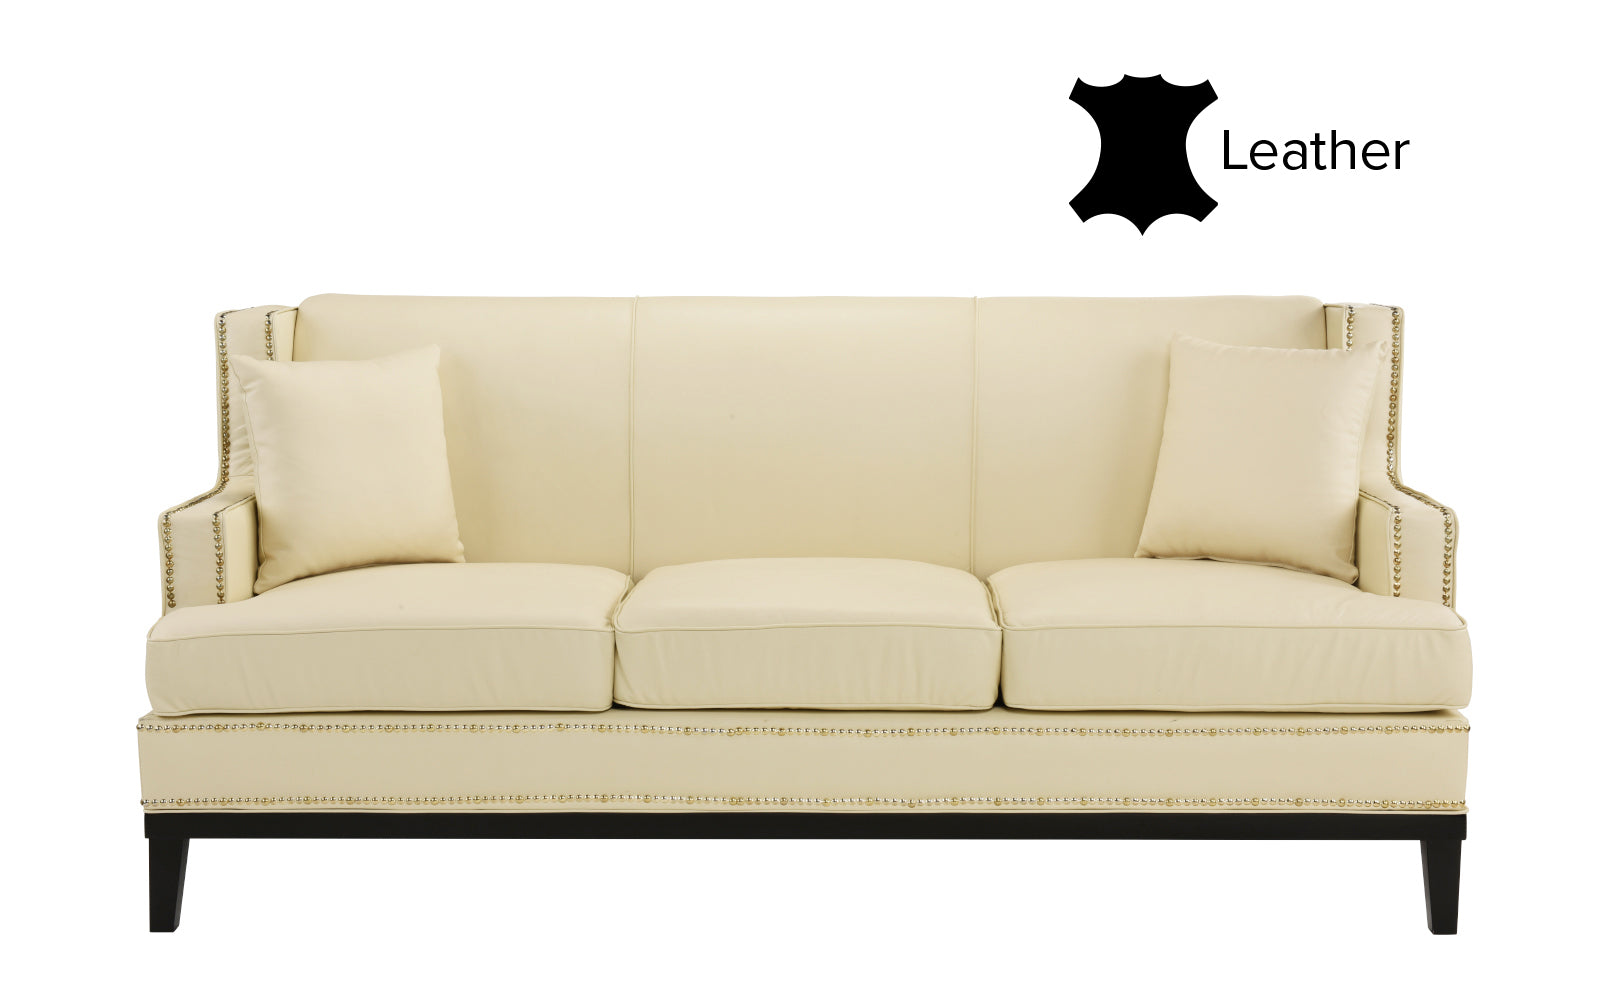 cassandra leather match sofa with 2 pillows. Black Bedroom Furniture Sets. Home Design Ideas